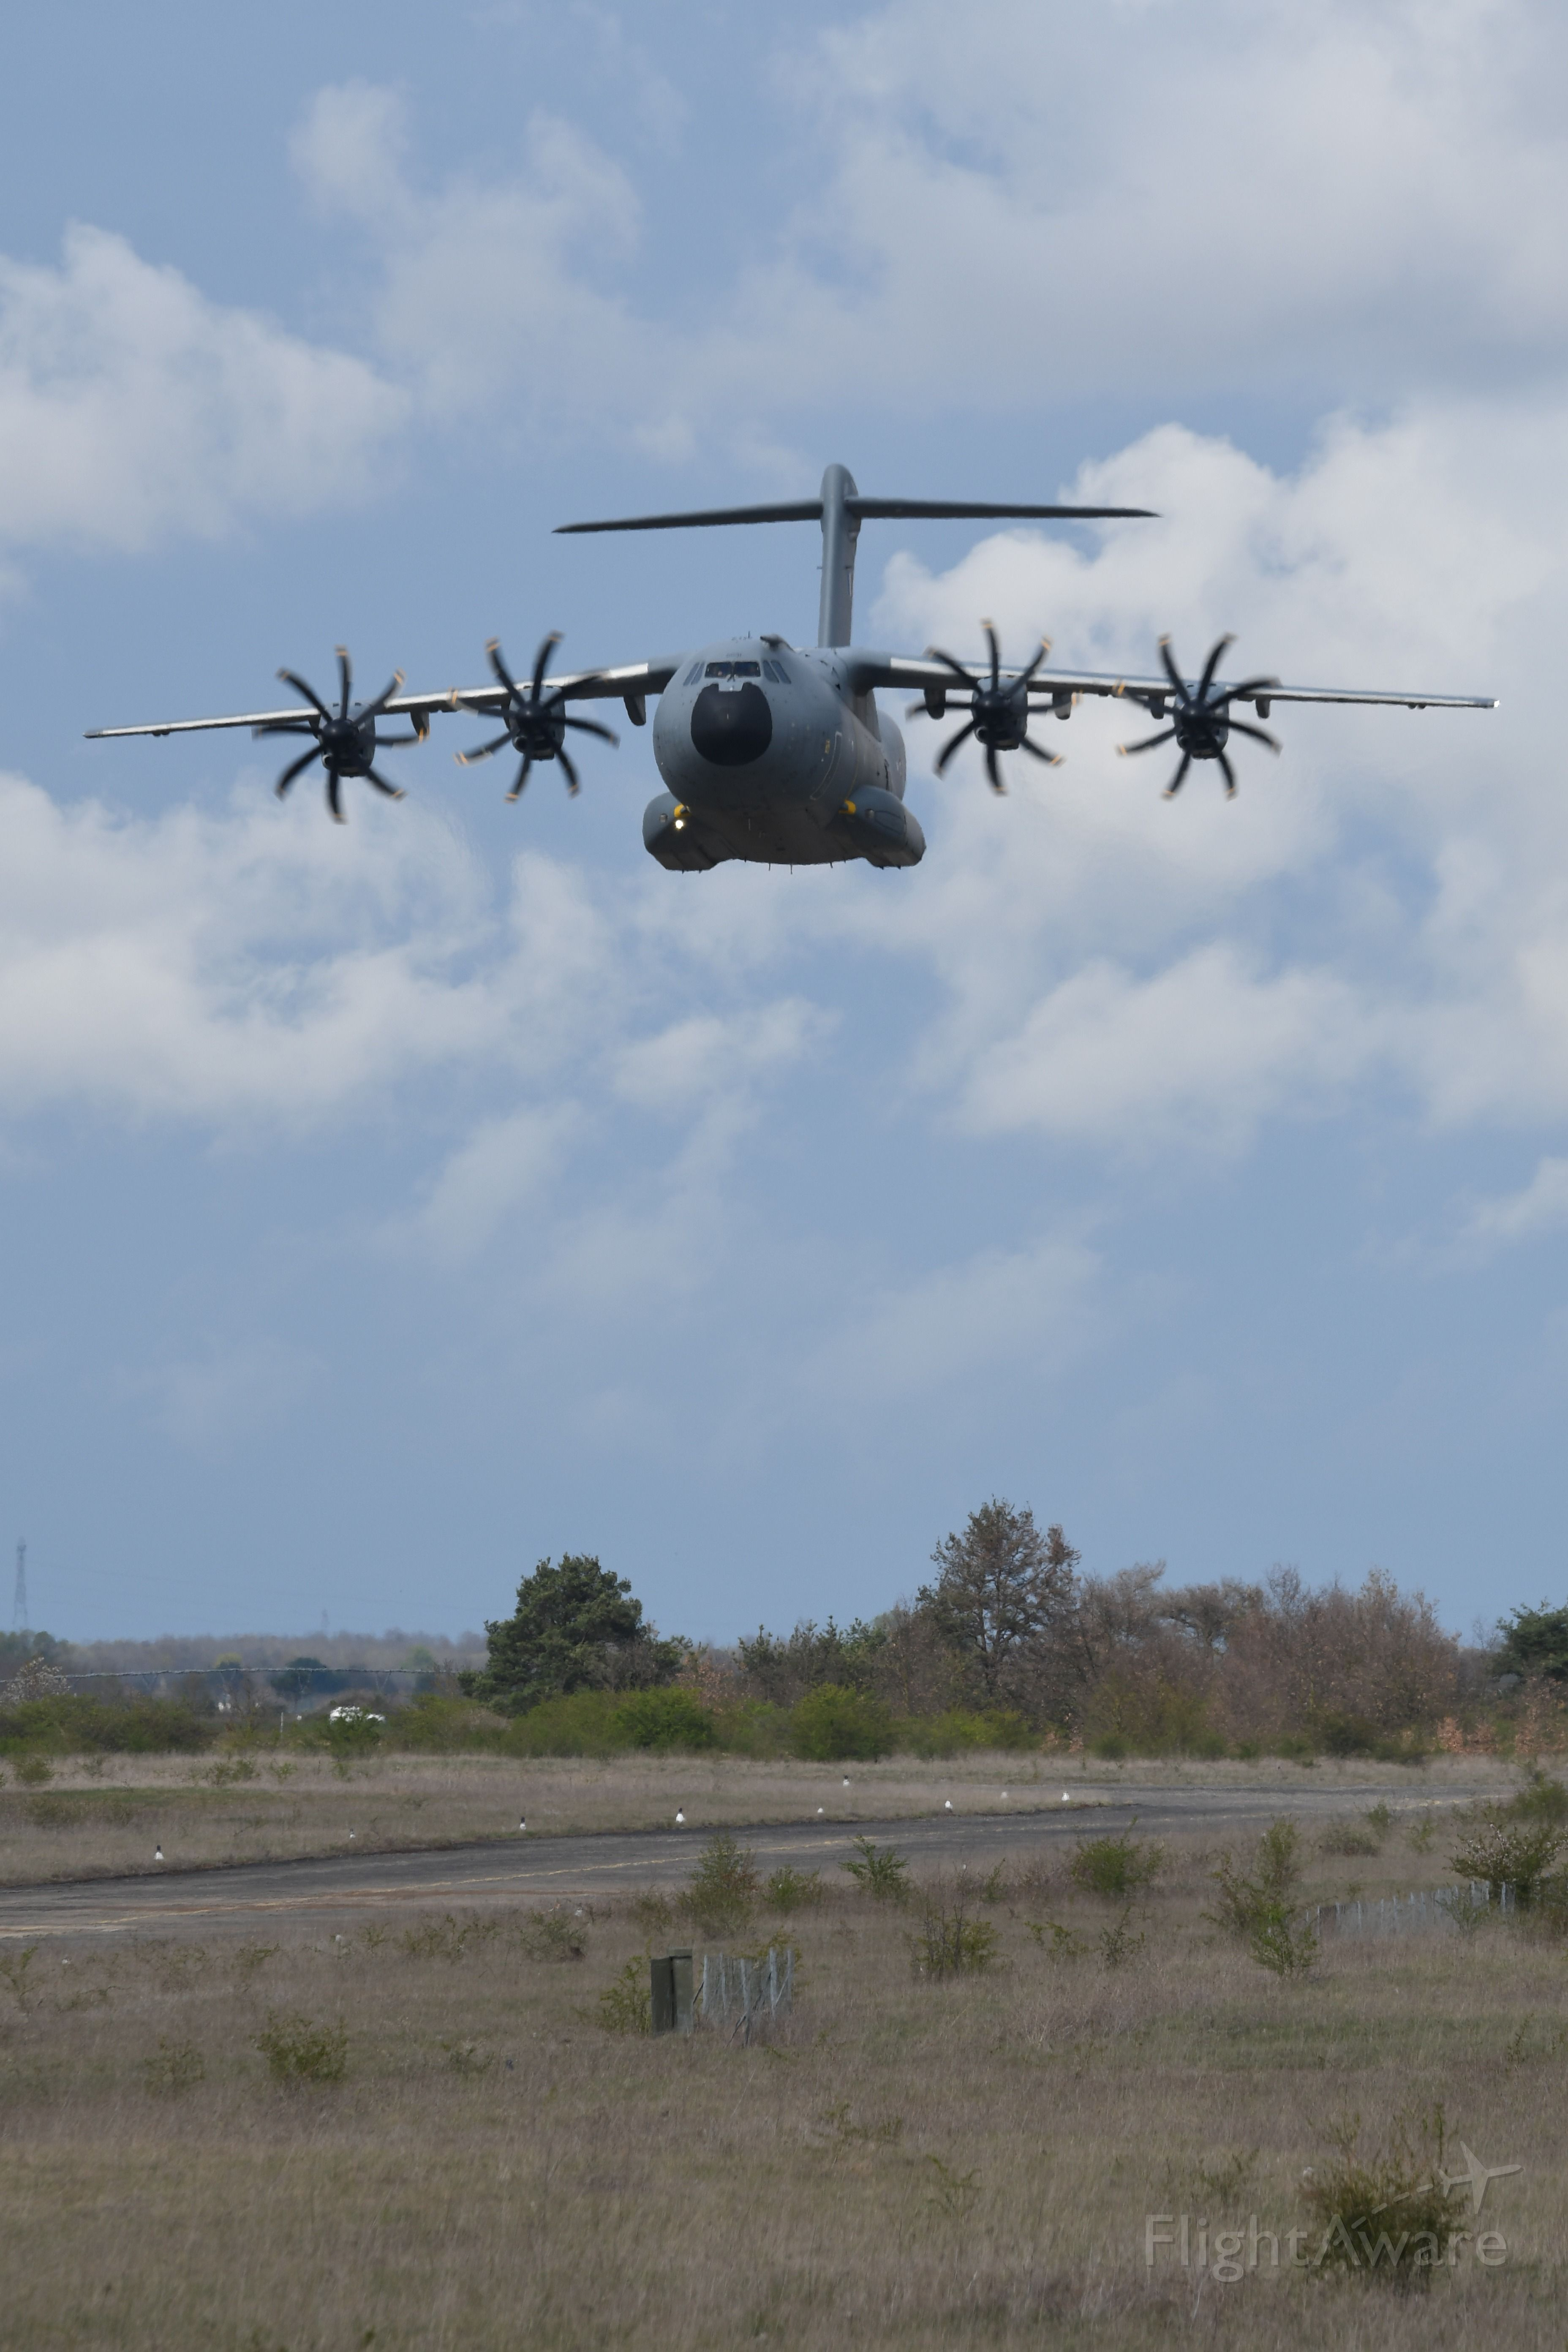 — — - Colmar AB during combined exercices APR2019 Lowpass in progress A400M<br />Alsace France